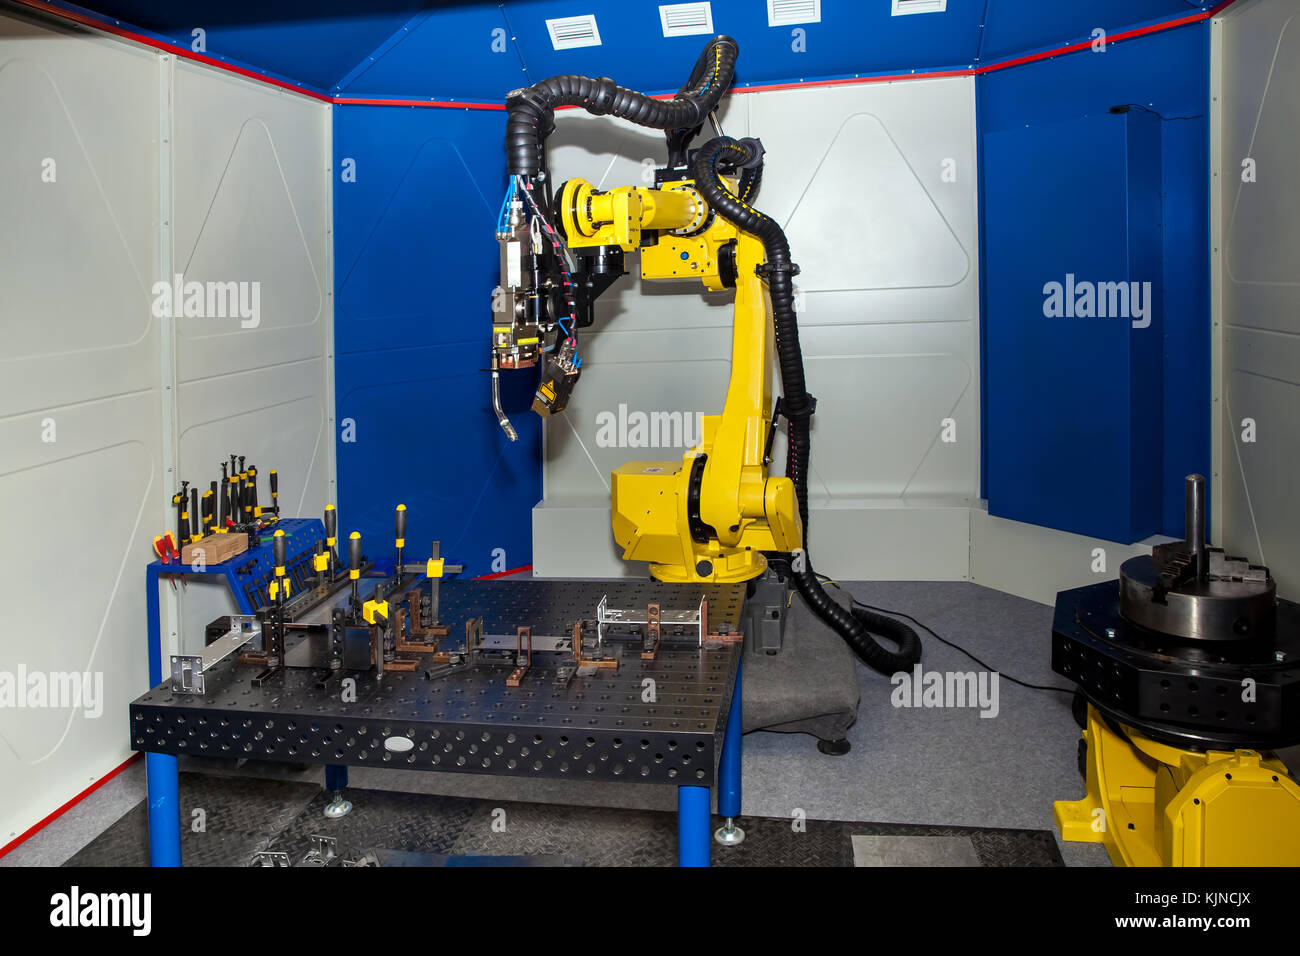 Robot welding equipment, close up process view - Stock Image